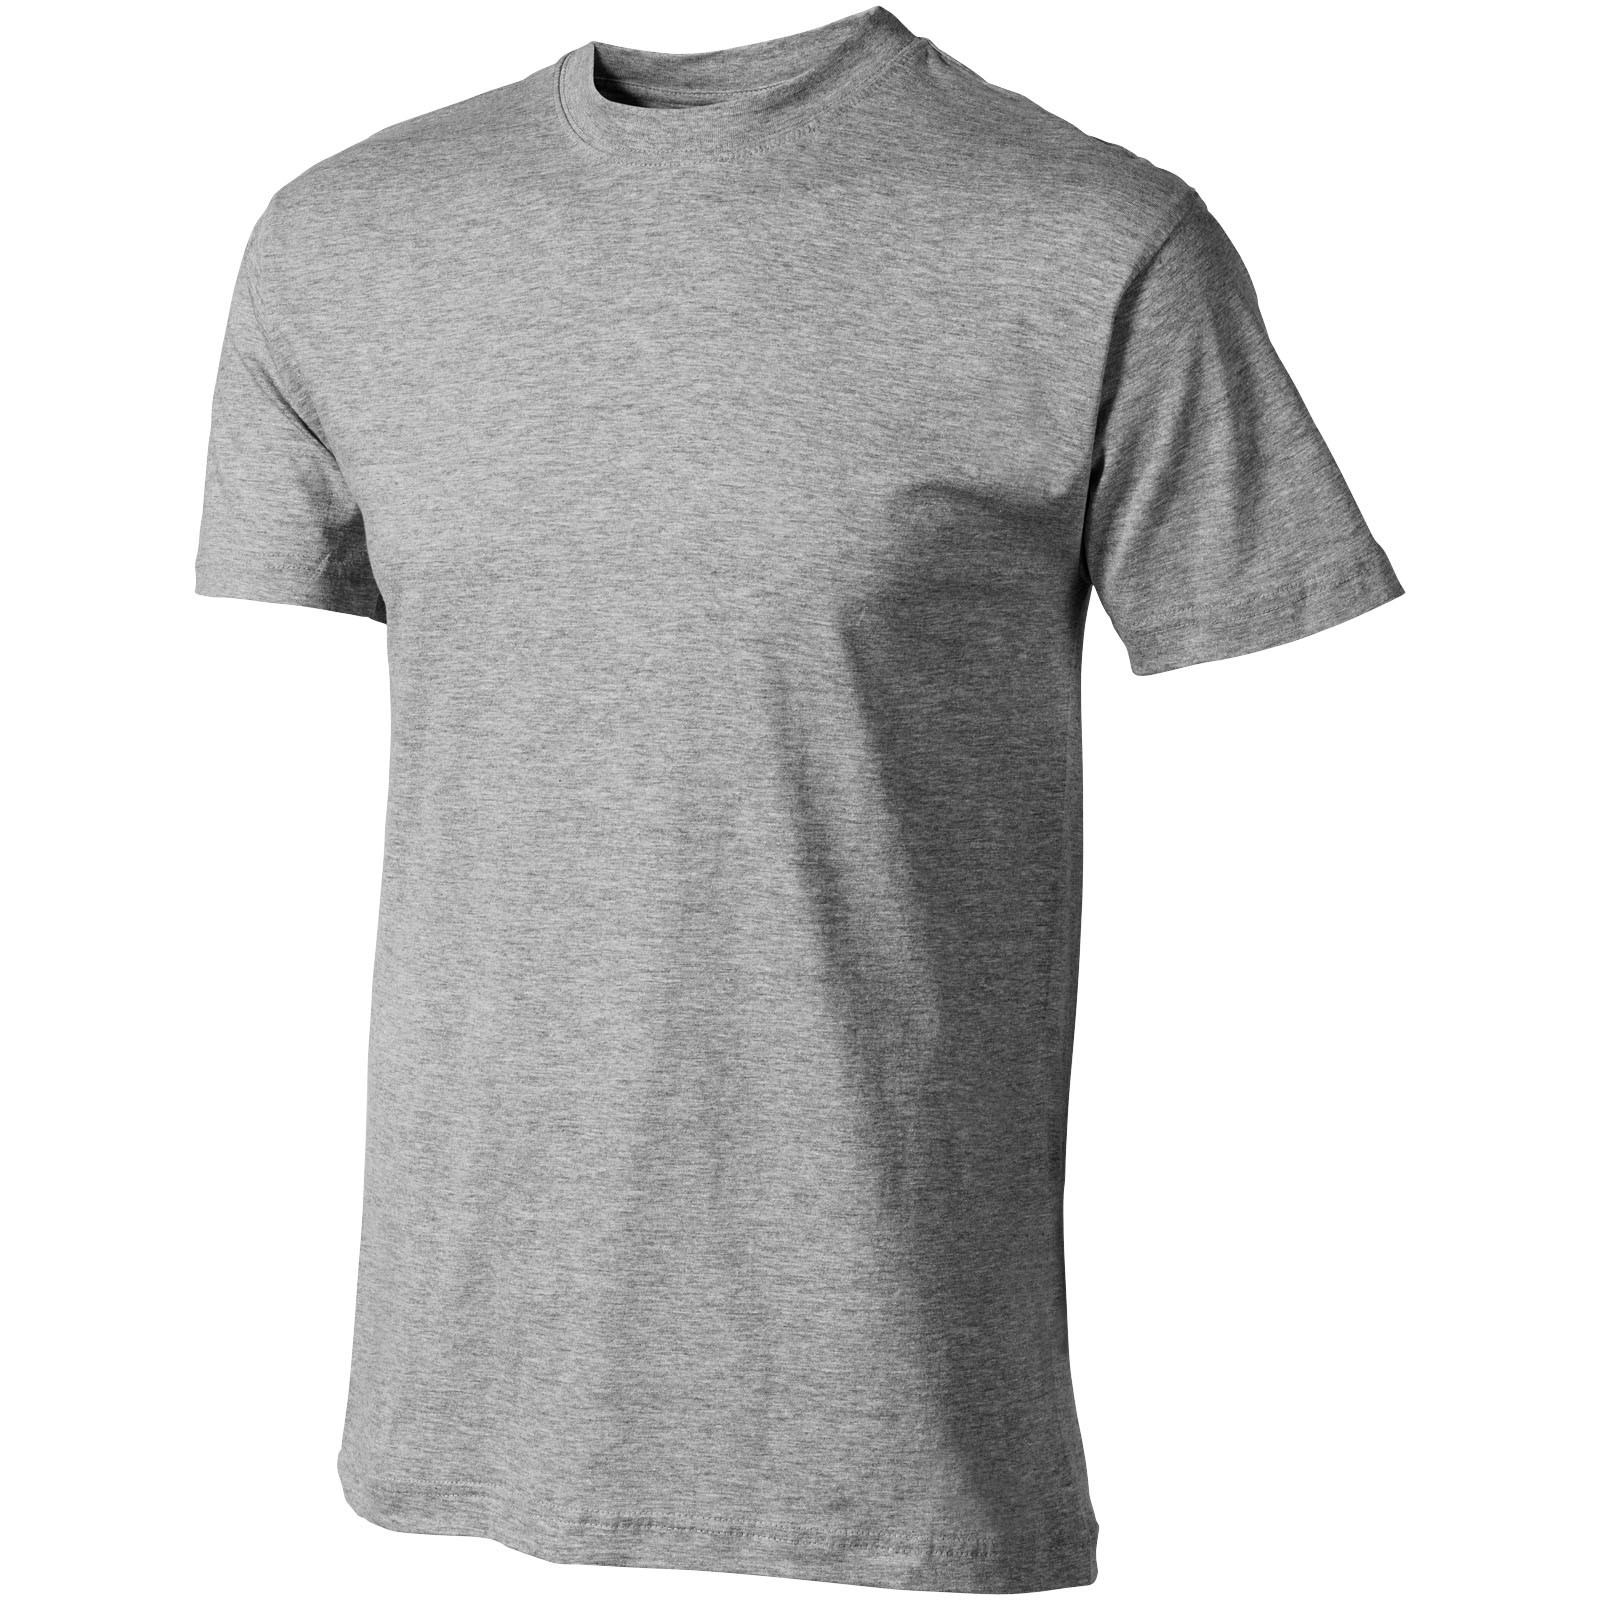 Return Ace short sleeve unisex t-shirt - Grey Melange / XL